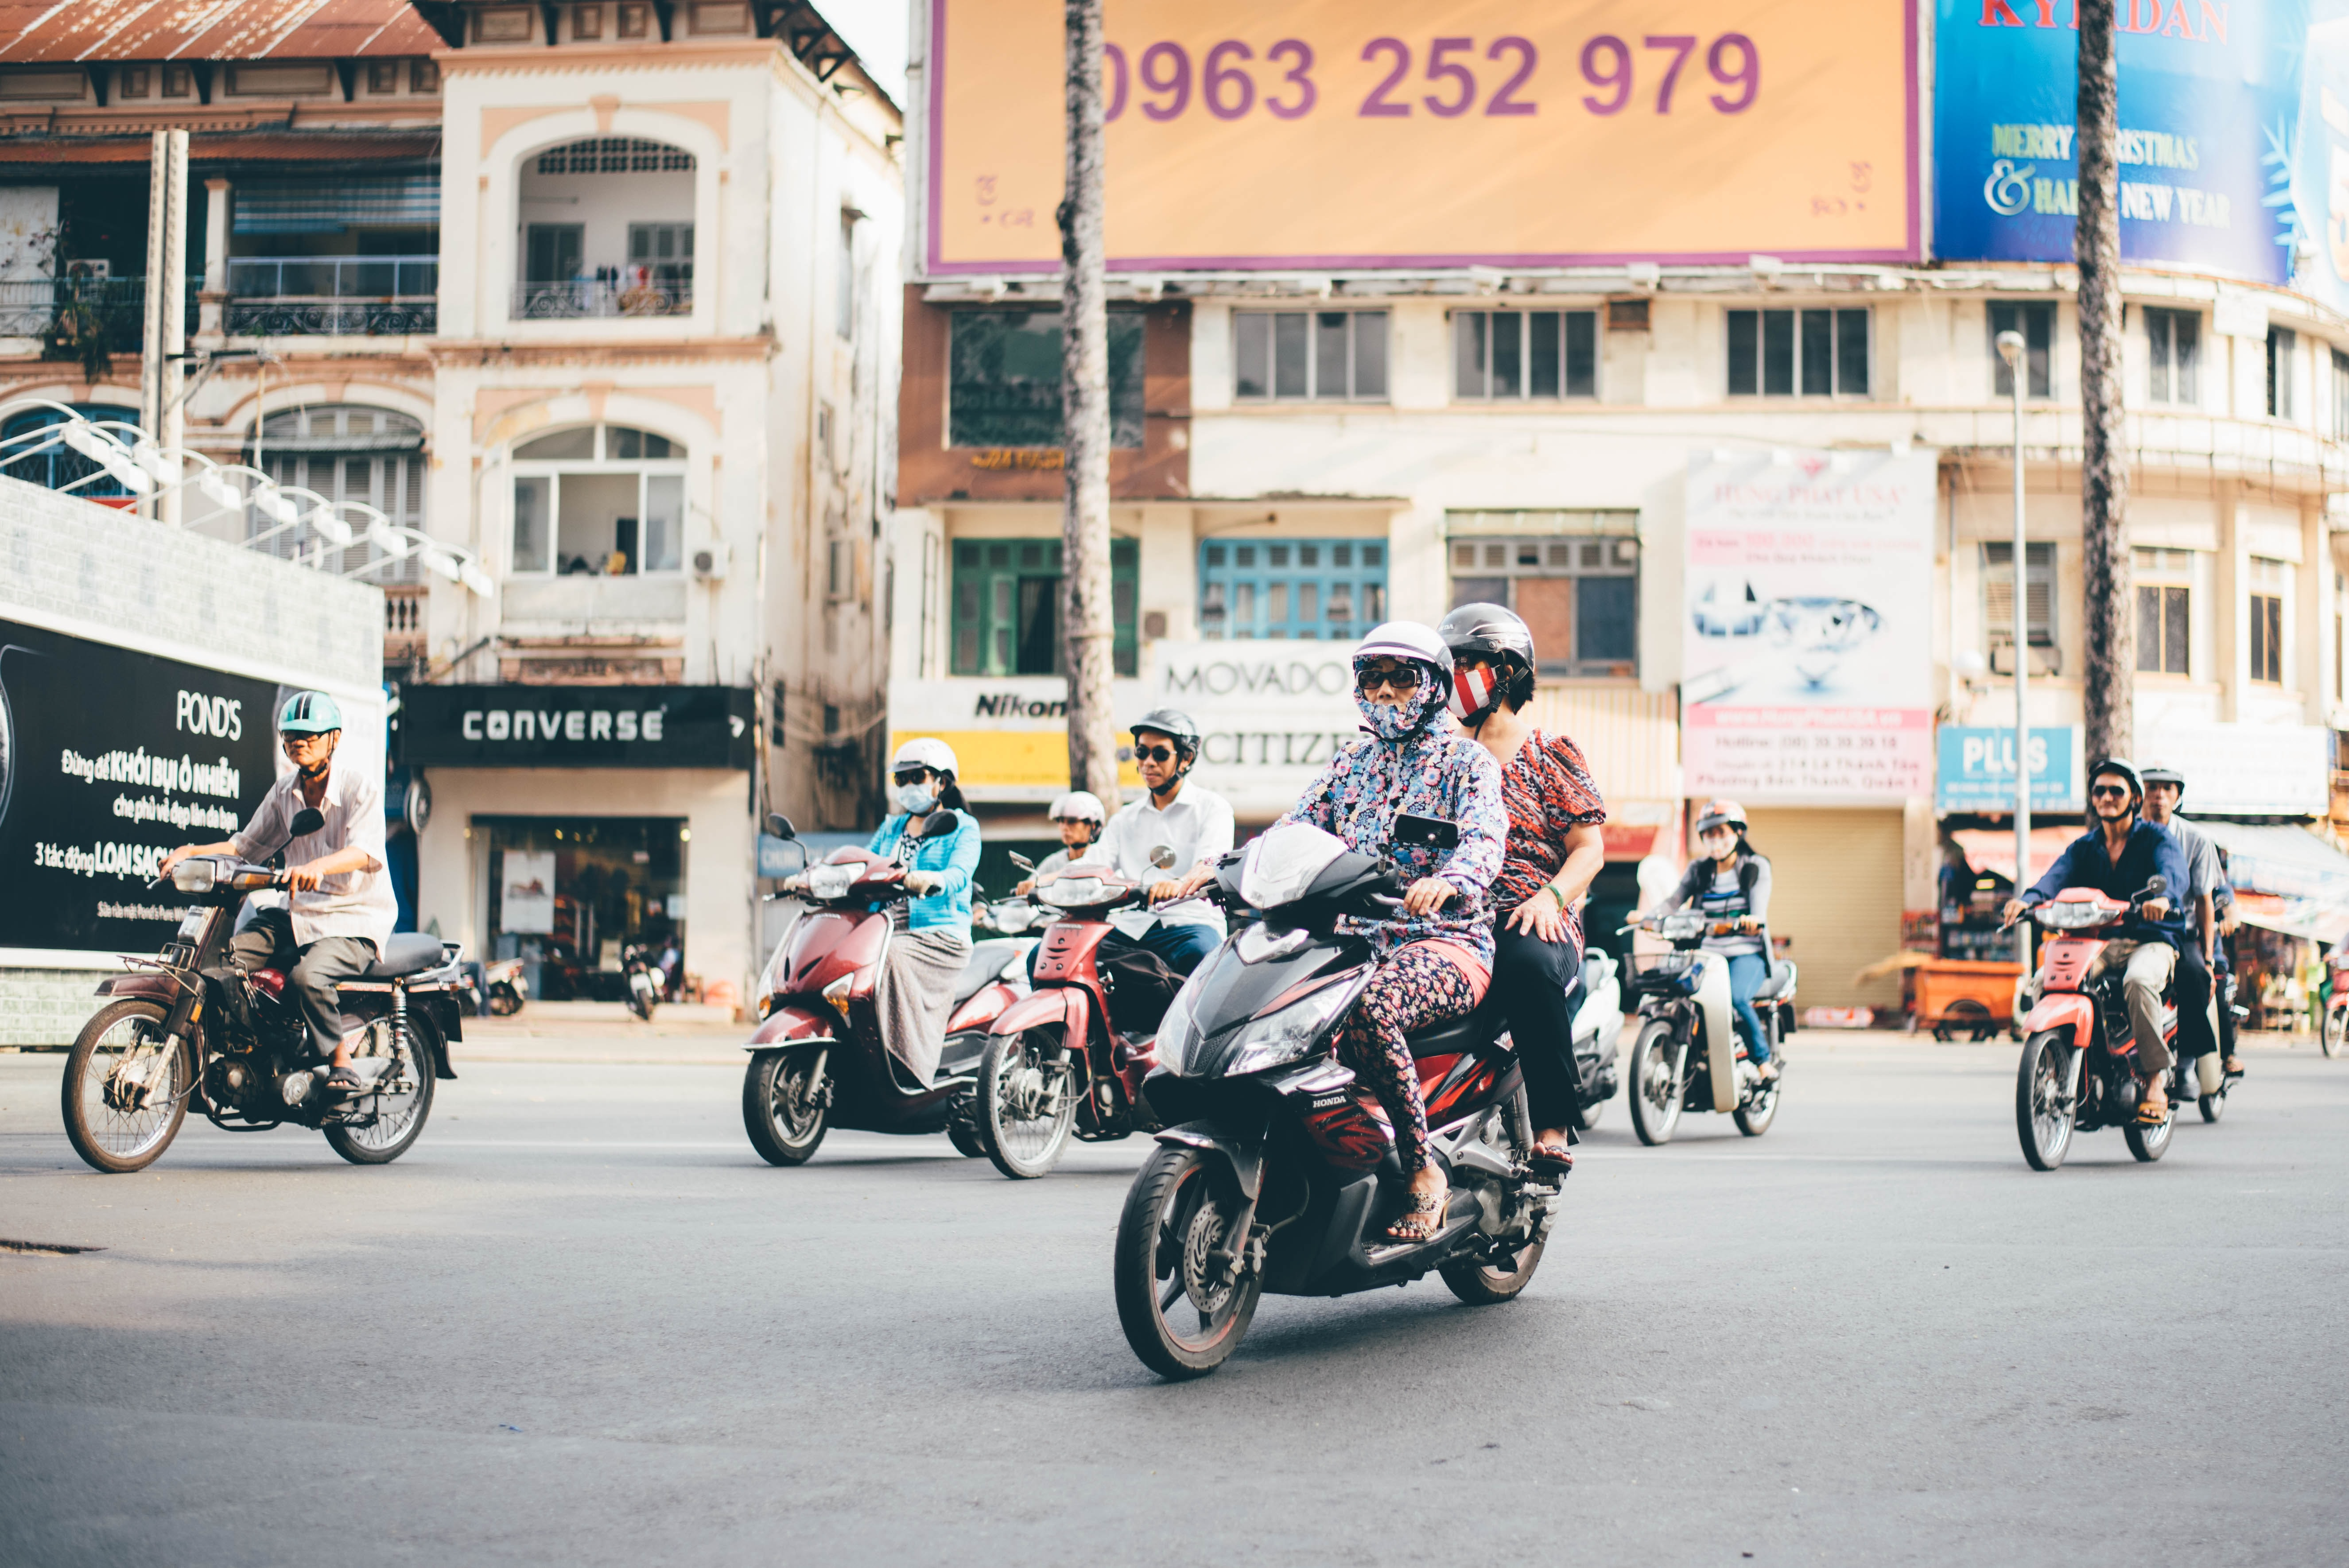 Diverse group of people riding vespas and motorcycles down a city street